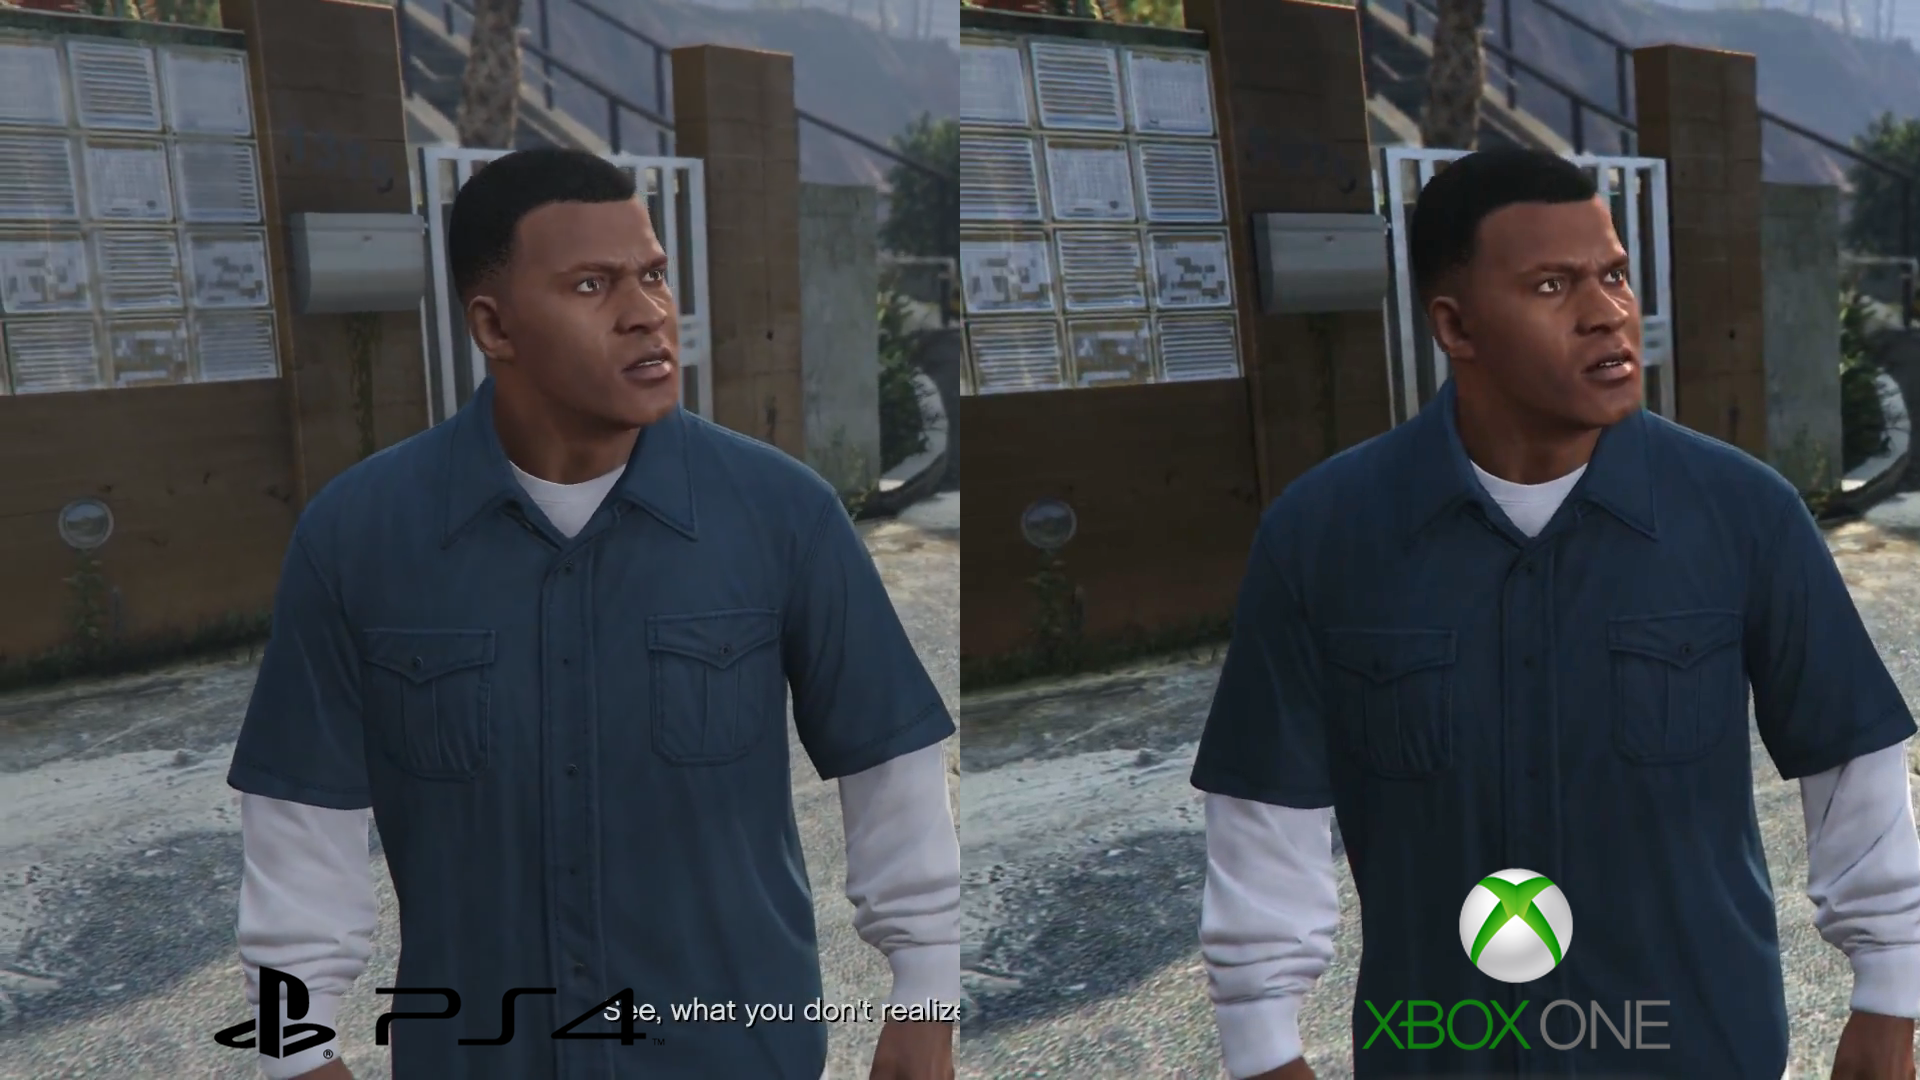 Gta V Ps4 Vs Xbox One 1080p Video And Screenshot Comparison Game Grand Theft Auto Image122 Image131 Image141 Image151 What Do You Thing About